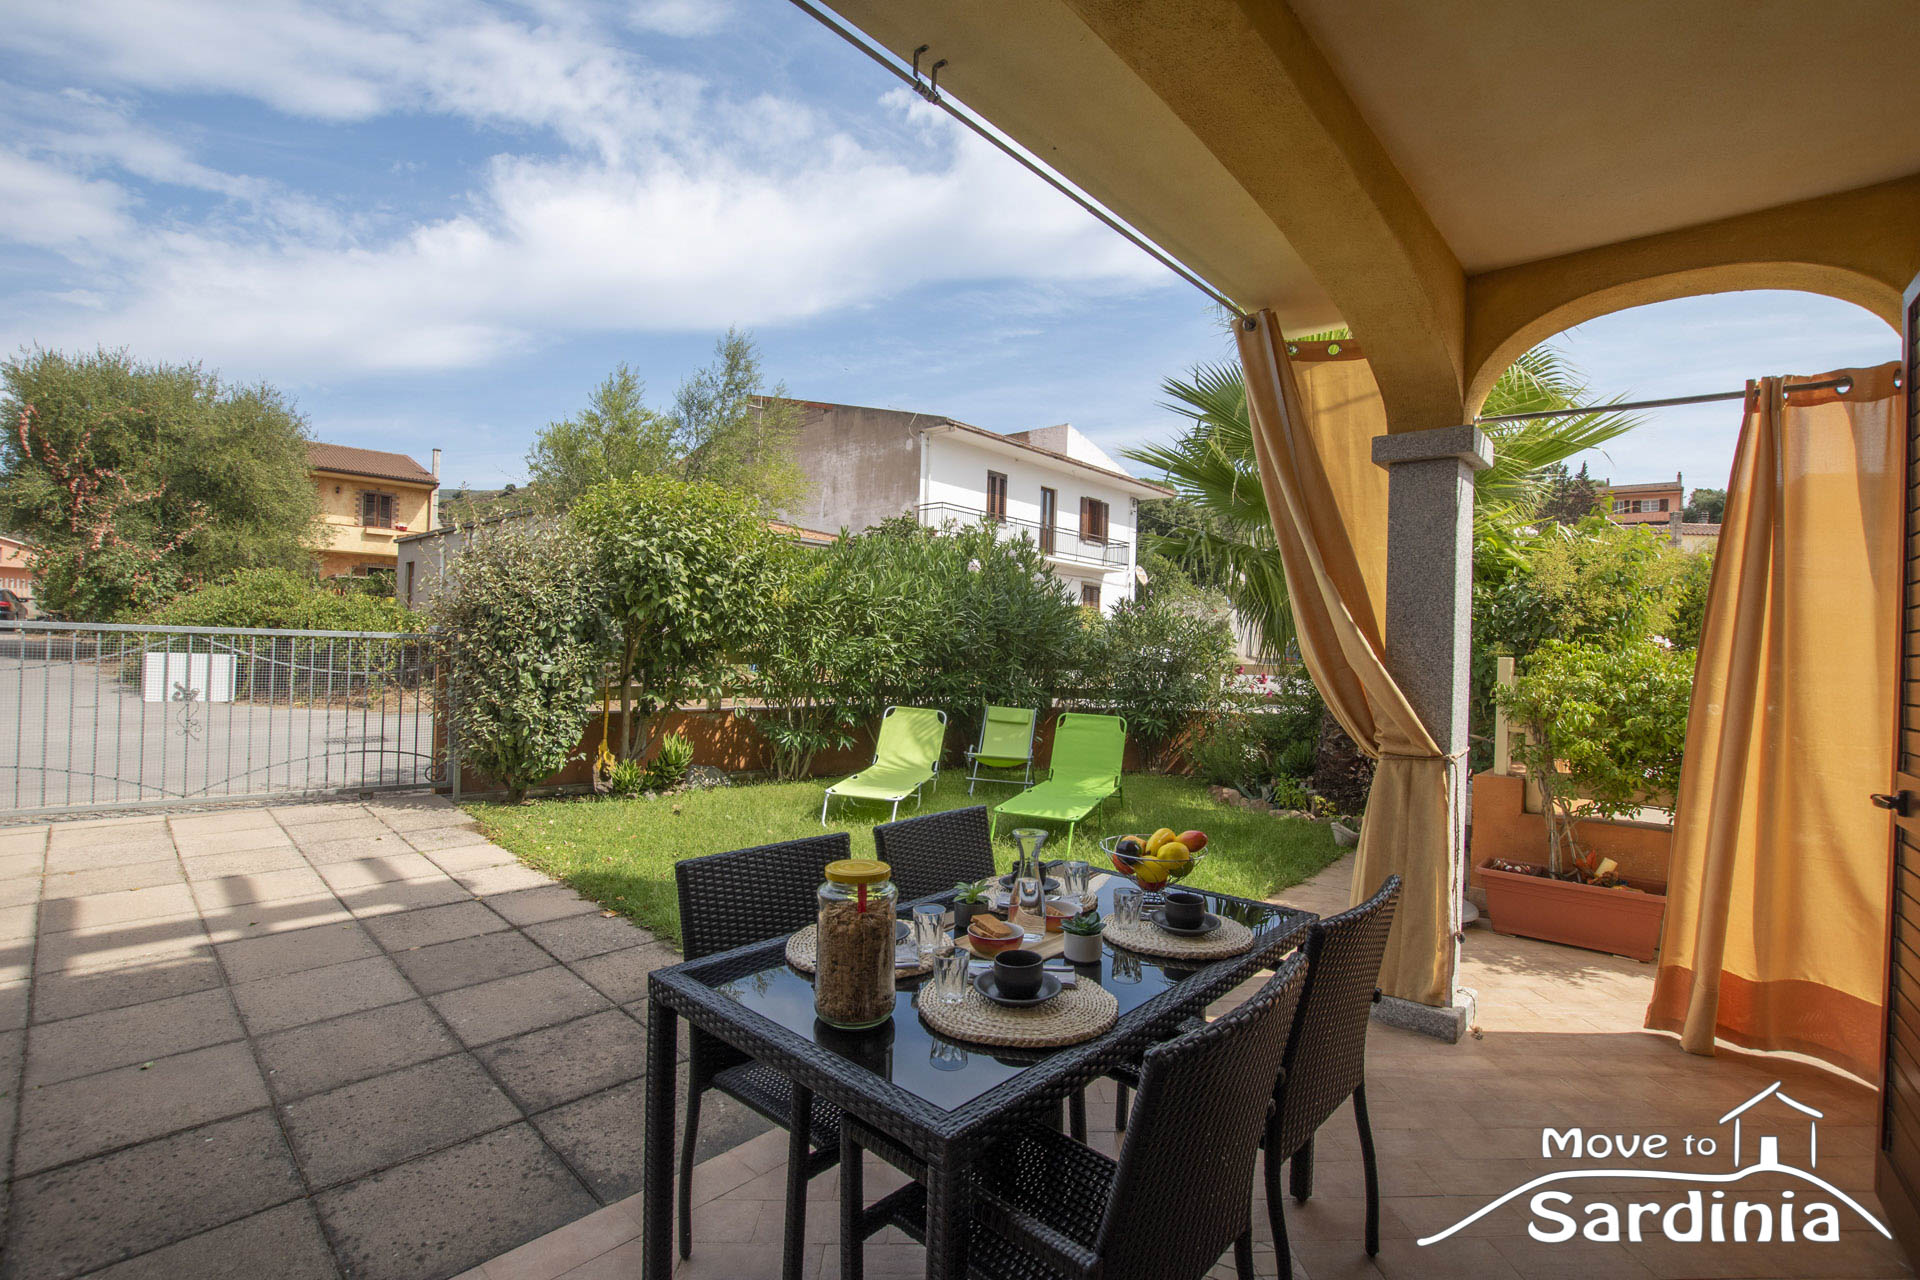 Terraced house for sale in Sardinia, comfortable veranda and private parking, only few km from the beach